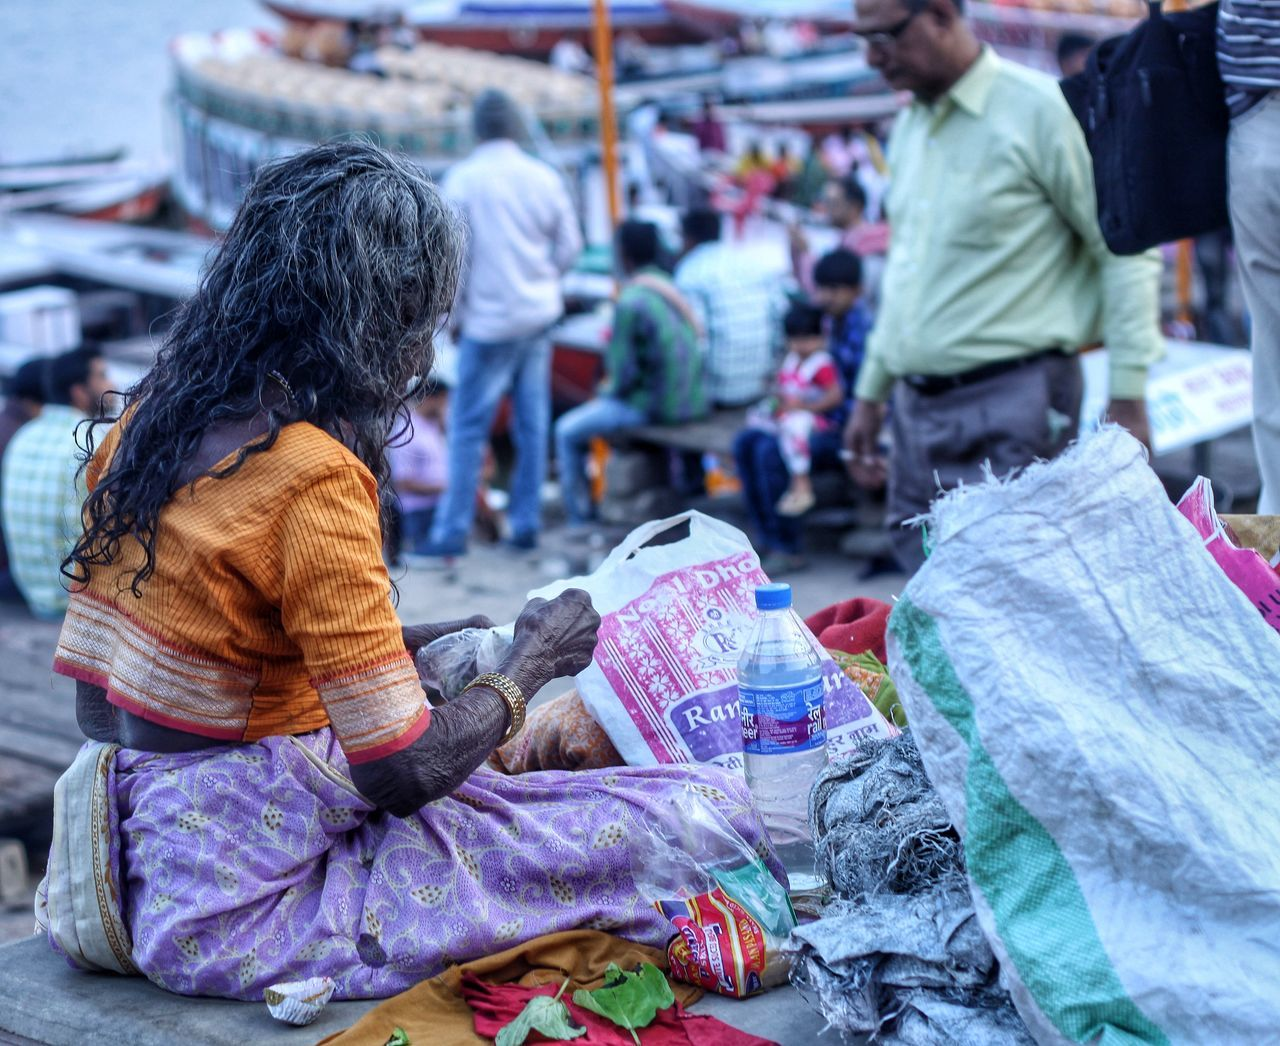 One Woman Only Adults Only Market Only Women Women One Person Adult People Outdoors Day Canon50D India Travel Baranasi Travel Photography Culture Life Varanasi, India Ganges, Indian Lifestyle And Culture, Bathing In The Ganges, Varanasidiaries